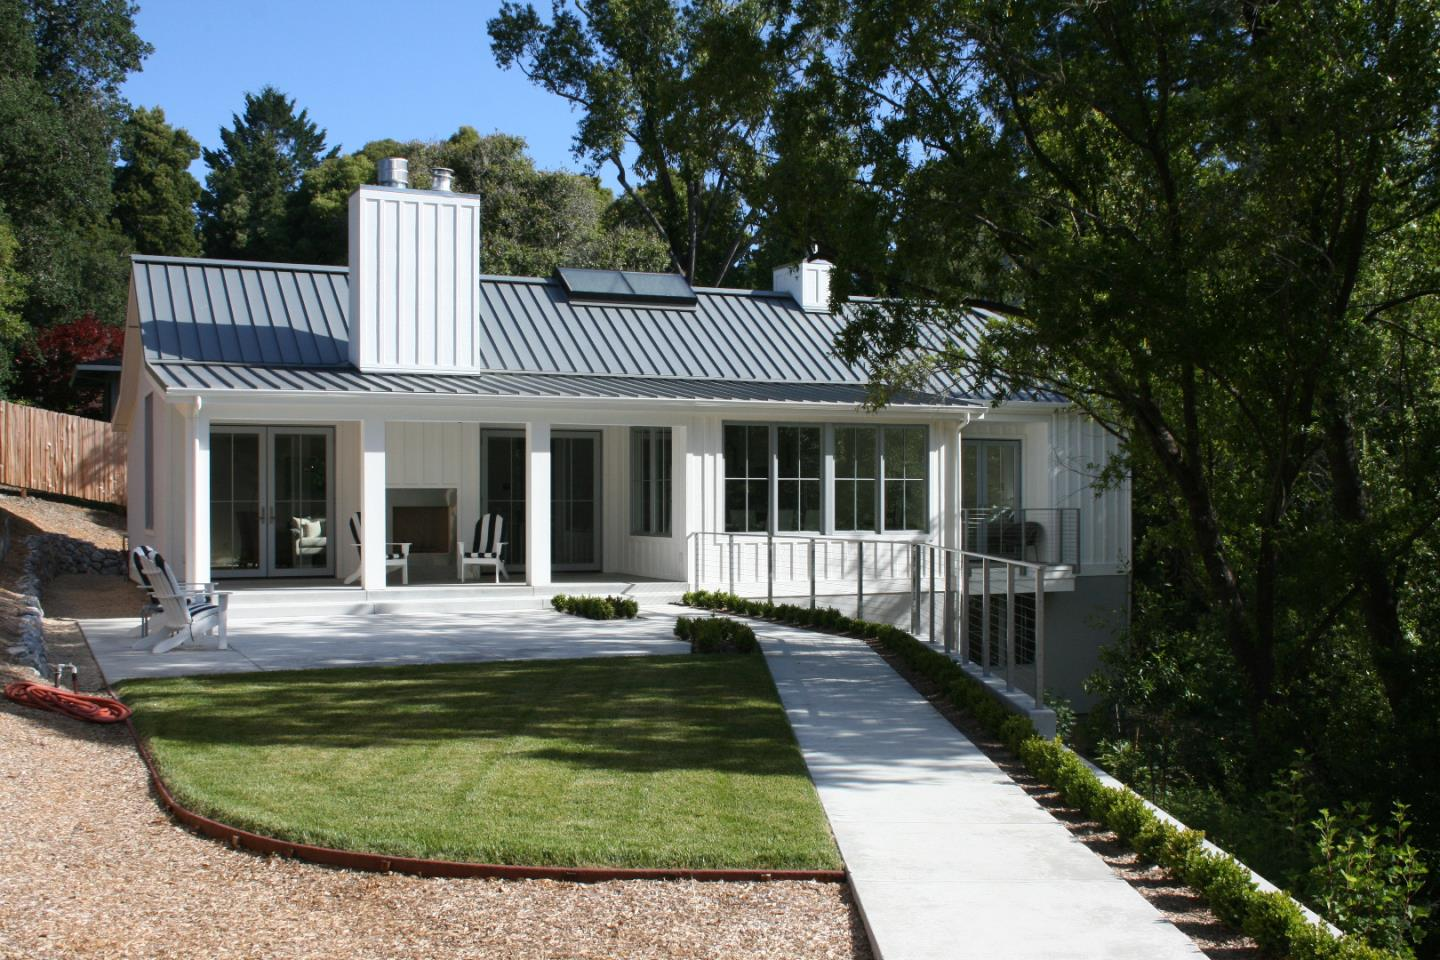 "Stunning BRAND NEW Pasatiempo Custom Modern Farmhouse!  Bordering a peaceful & serene creek, 3 Bedroom / 2.5 Bath (2504 sq ft) home w/ Guest Cottage (616 sq. ft.) with full bath and washer/dryer hook-ups designed by local Architect, Thomas Rahe. Imagine Napa meets Pasatiempo!  Beautiful 16 ft Vaulted Wood Ceiling, High End Kitchen Appliances (48"" Commercial Style Range, 42"" Built-in Refrigerator, Beverage Center), Du Chateau Hardwood thru out, Gorgeous Master Bedroom Ensuite w/ Free Standing Tub, Carrera Marble, Italian tile shower.  The 1 Bedrm / Half Bath Guest Cottage features Du Chateau flooring and cozy Gas Fireplace for your guests to enjoy.  4 Fireplaces thru out the home, sunny Porch w/ fireplace, Large Dining Area, Sonos wiring, Marvin Alum Clad Wood Windows, 8 FT French Doors, Standing Seam Metal Roof with a beautiful Skylight to capture light of the trees and sky on this dreamy parcel. Pasatiempo is truly Santa Cruz's best kept secret.. swimming, tennis, restaurants & golf!"